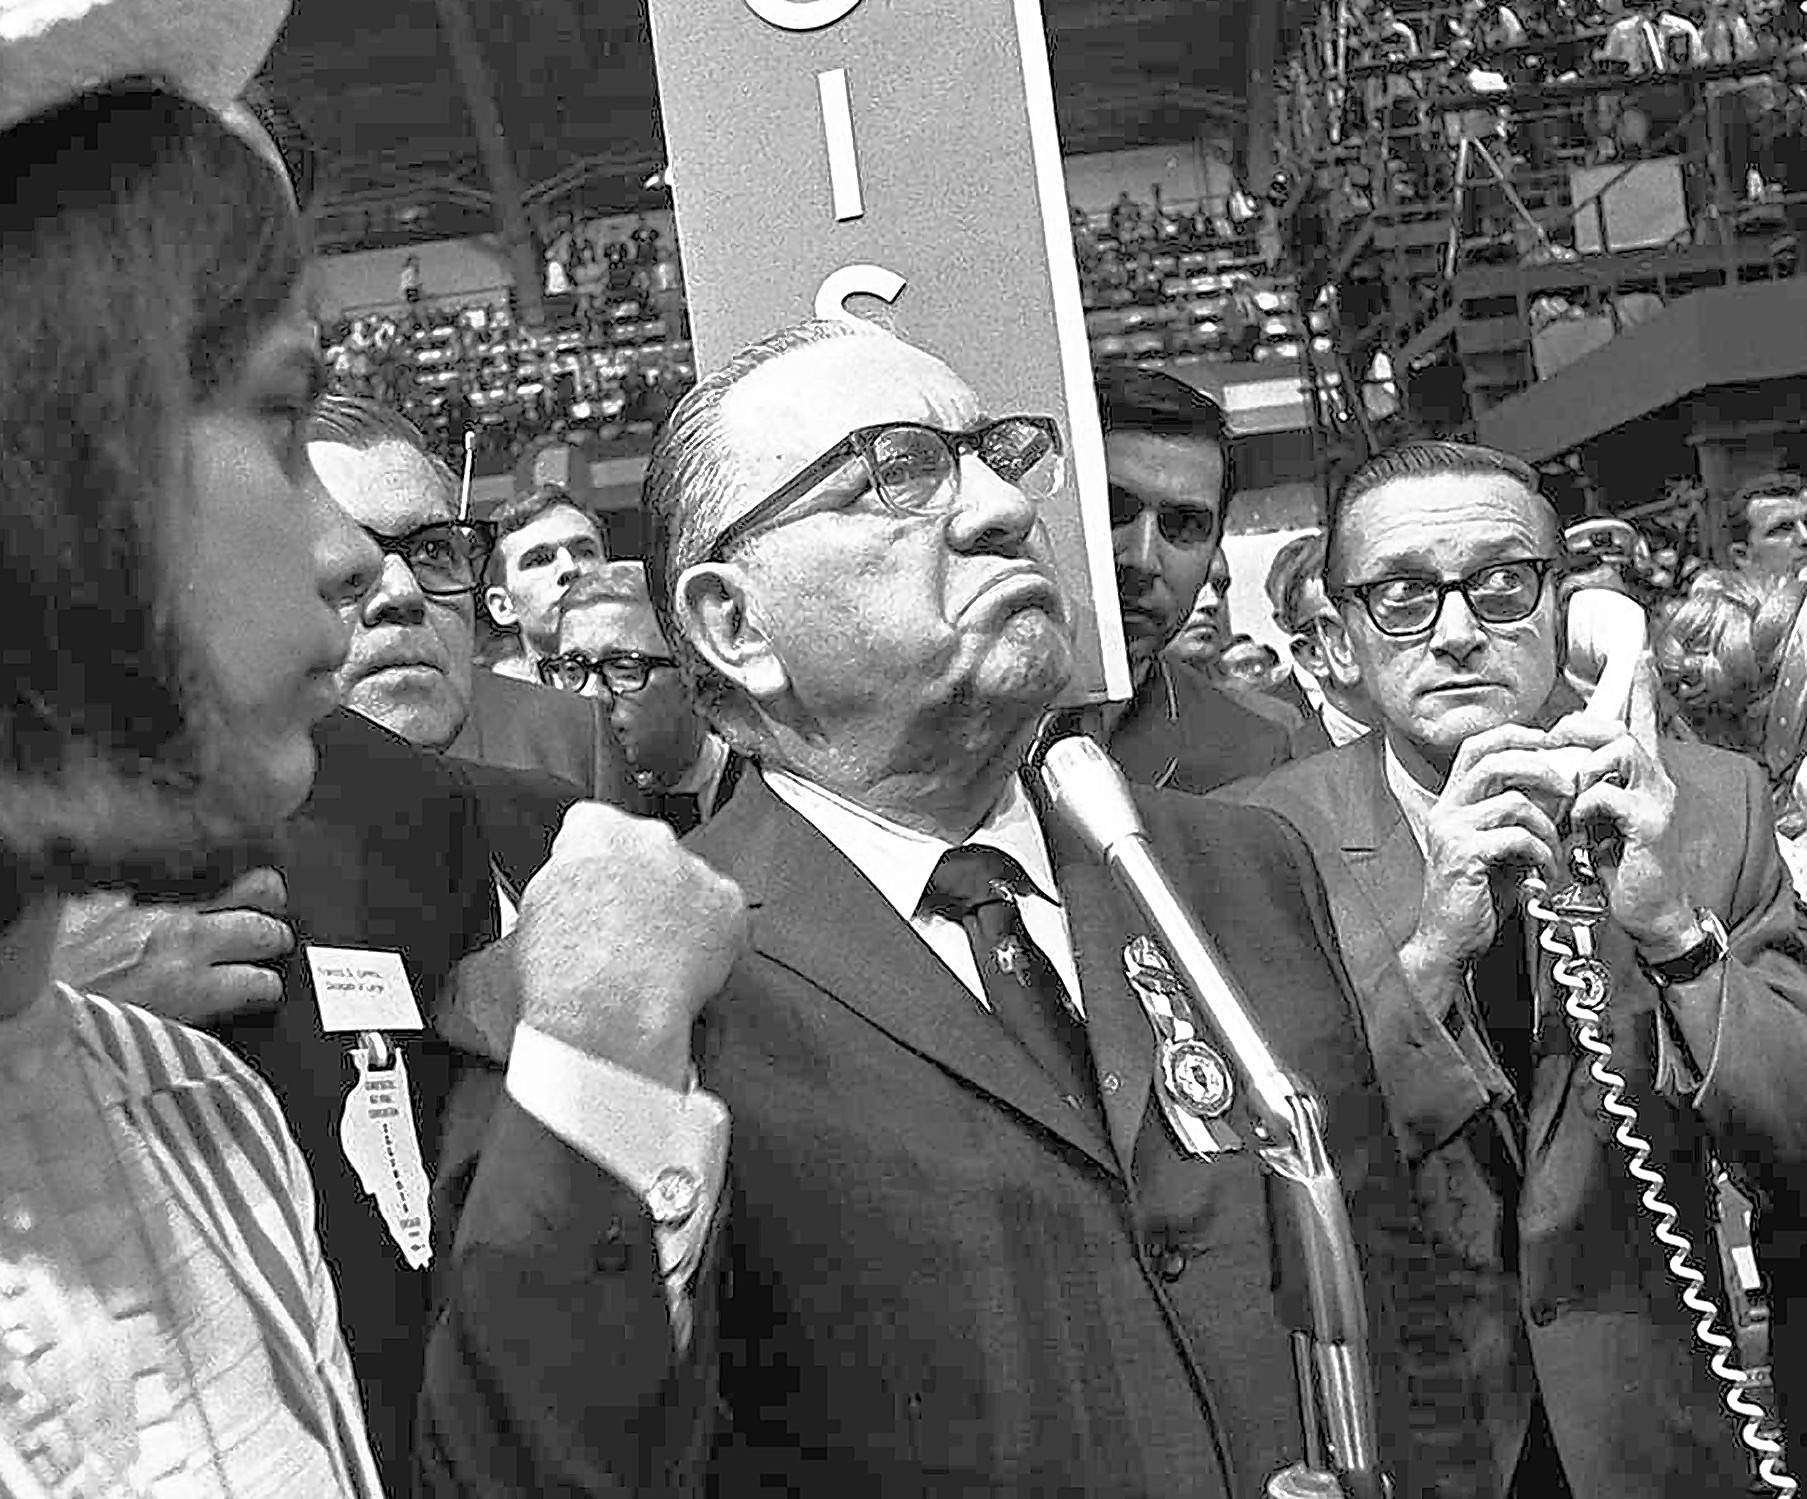 A furious Mayor Richard J. Daley stands at the microphone as shouts resound through the International Amphitheatre in Chicago, demanding the Democratic National Convention adjourn until later in the day before considering the party platform. Daley contended spectators in the galleries were doing the shouting. Daley was seated front-row center, directly below the rostrum. It was the position of honor; but it was also ground zero in a year of political and social upheaval.